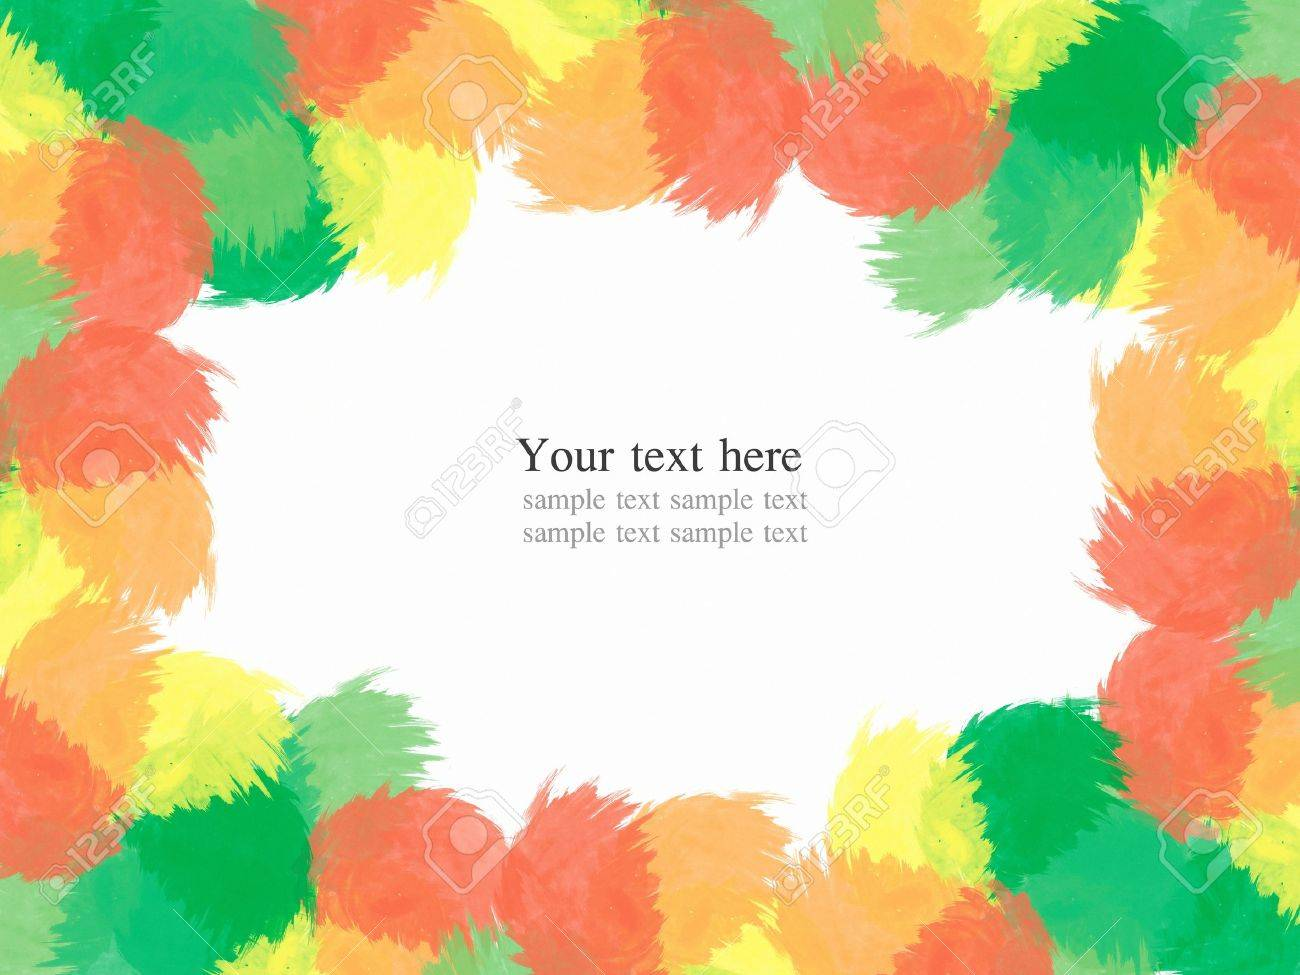 abstract water color paint colorful frame background Stock Photo - 8993132